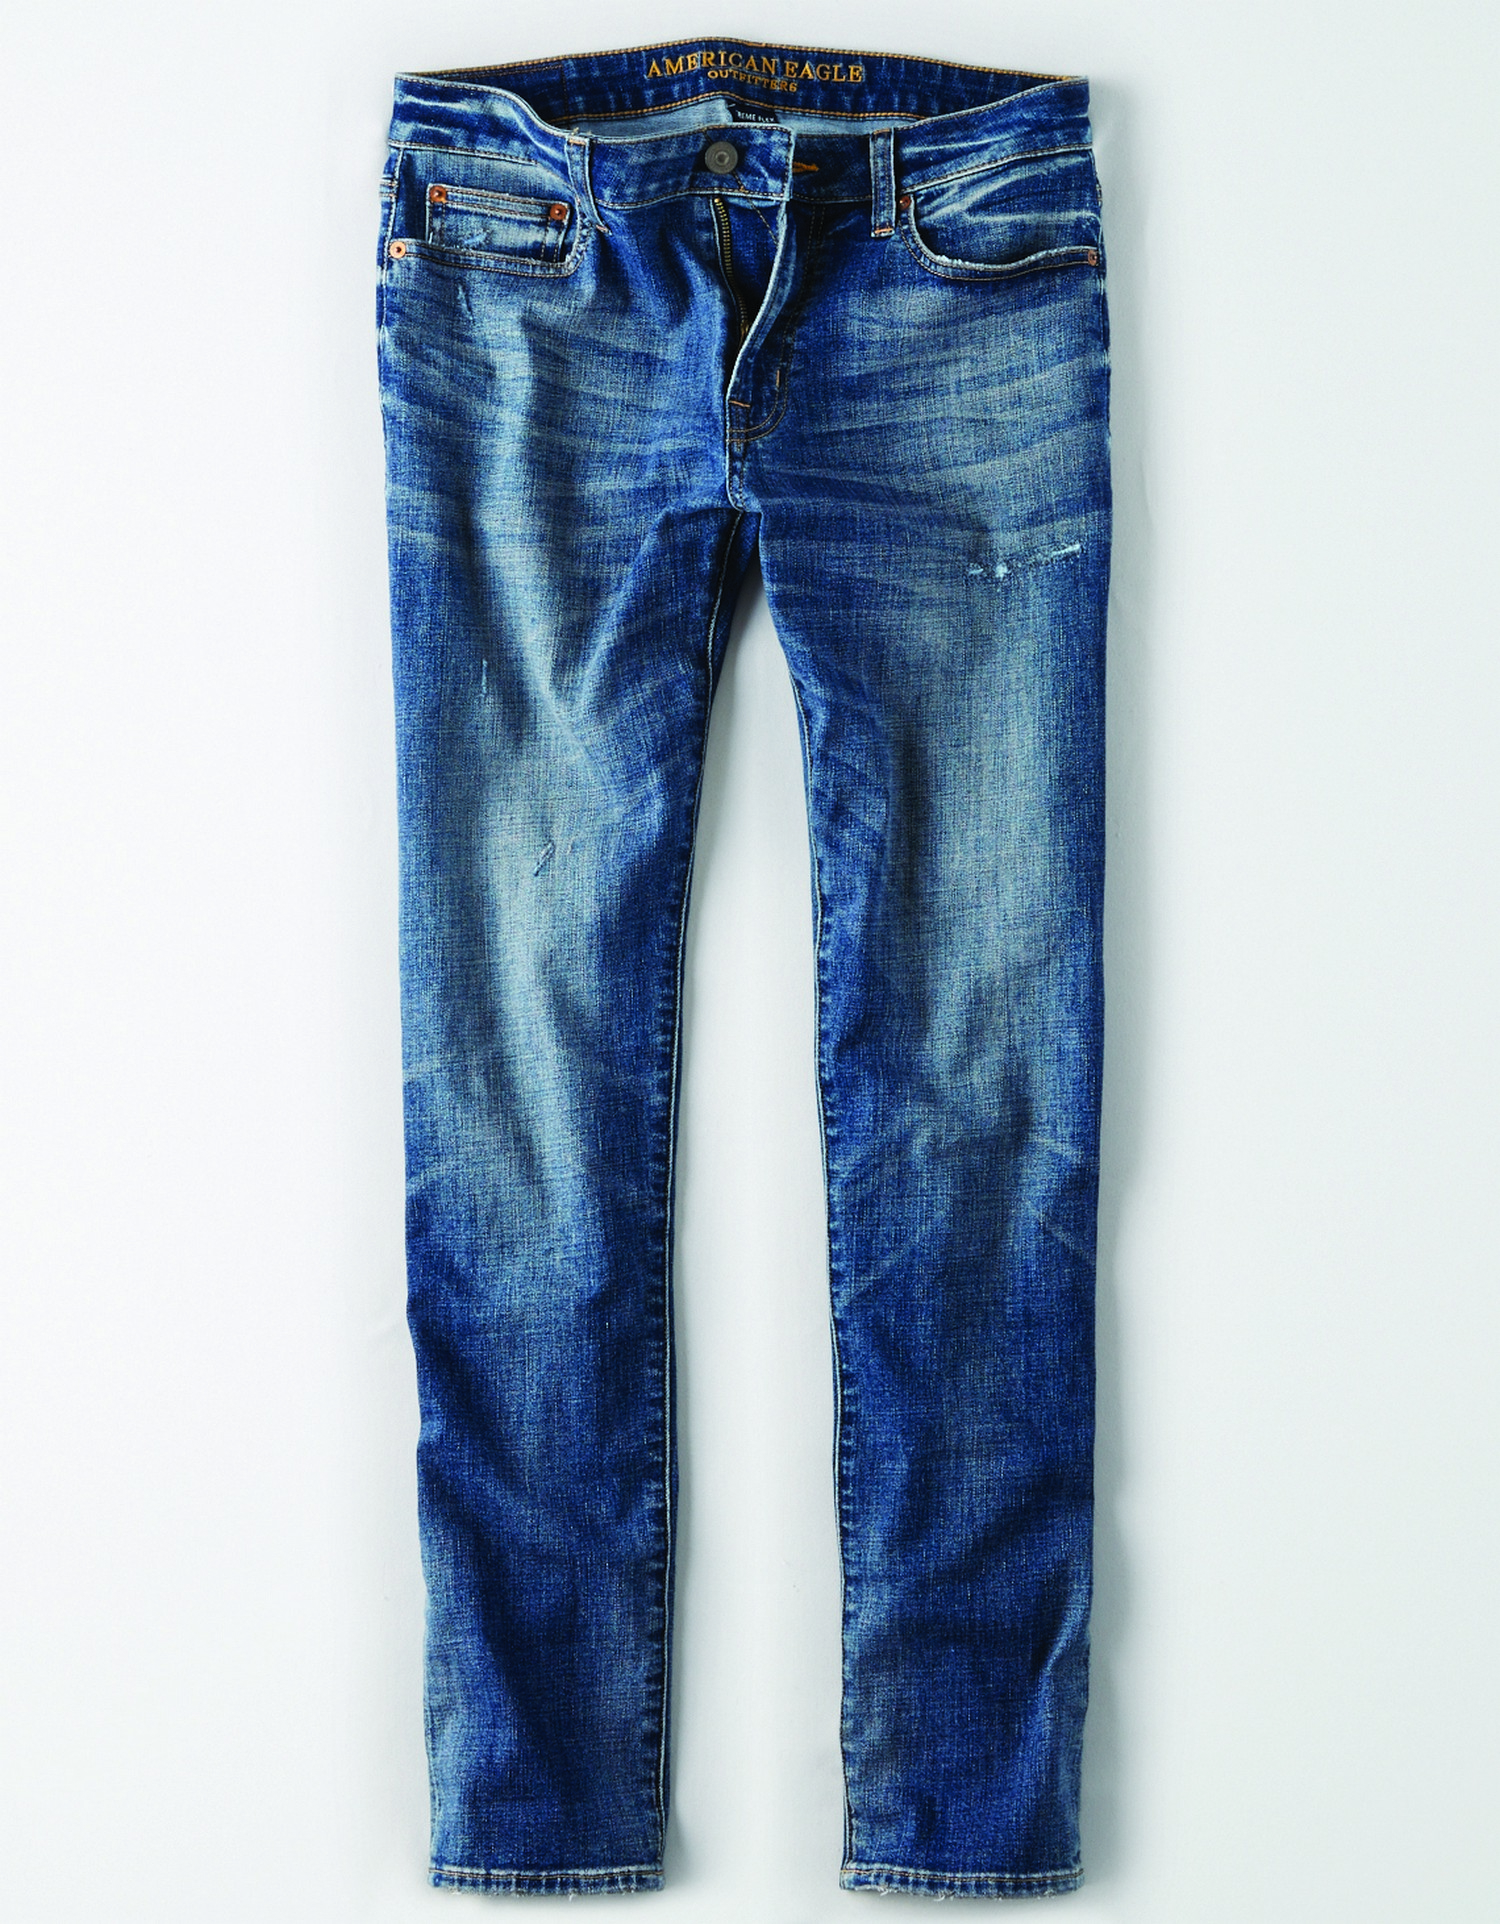 AE - INTL - Apparel - M - SLIM Denim Pant  - Medium Blue Wash - Shiny copper rivets - dull silver button - no destroy - light brush destroyy around edge of front pockets KS